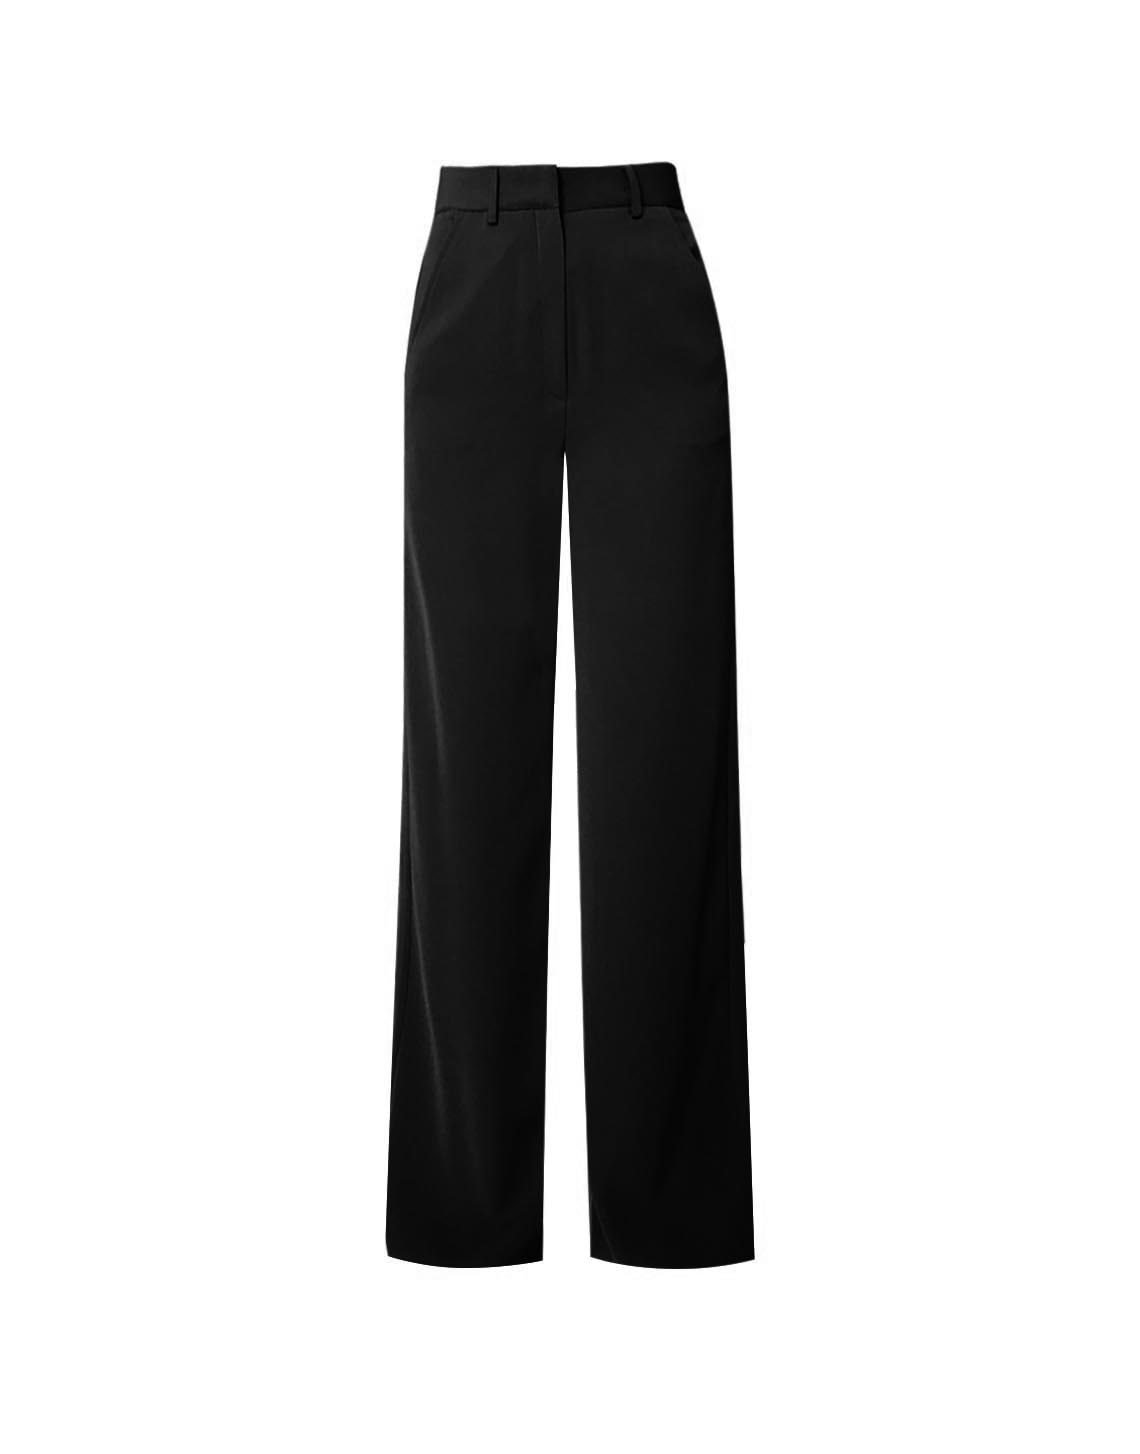 Caspien Pants - Black by Jessica K on curated-crowd.com